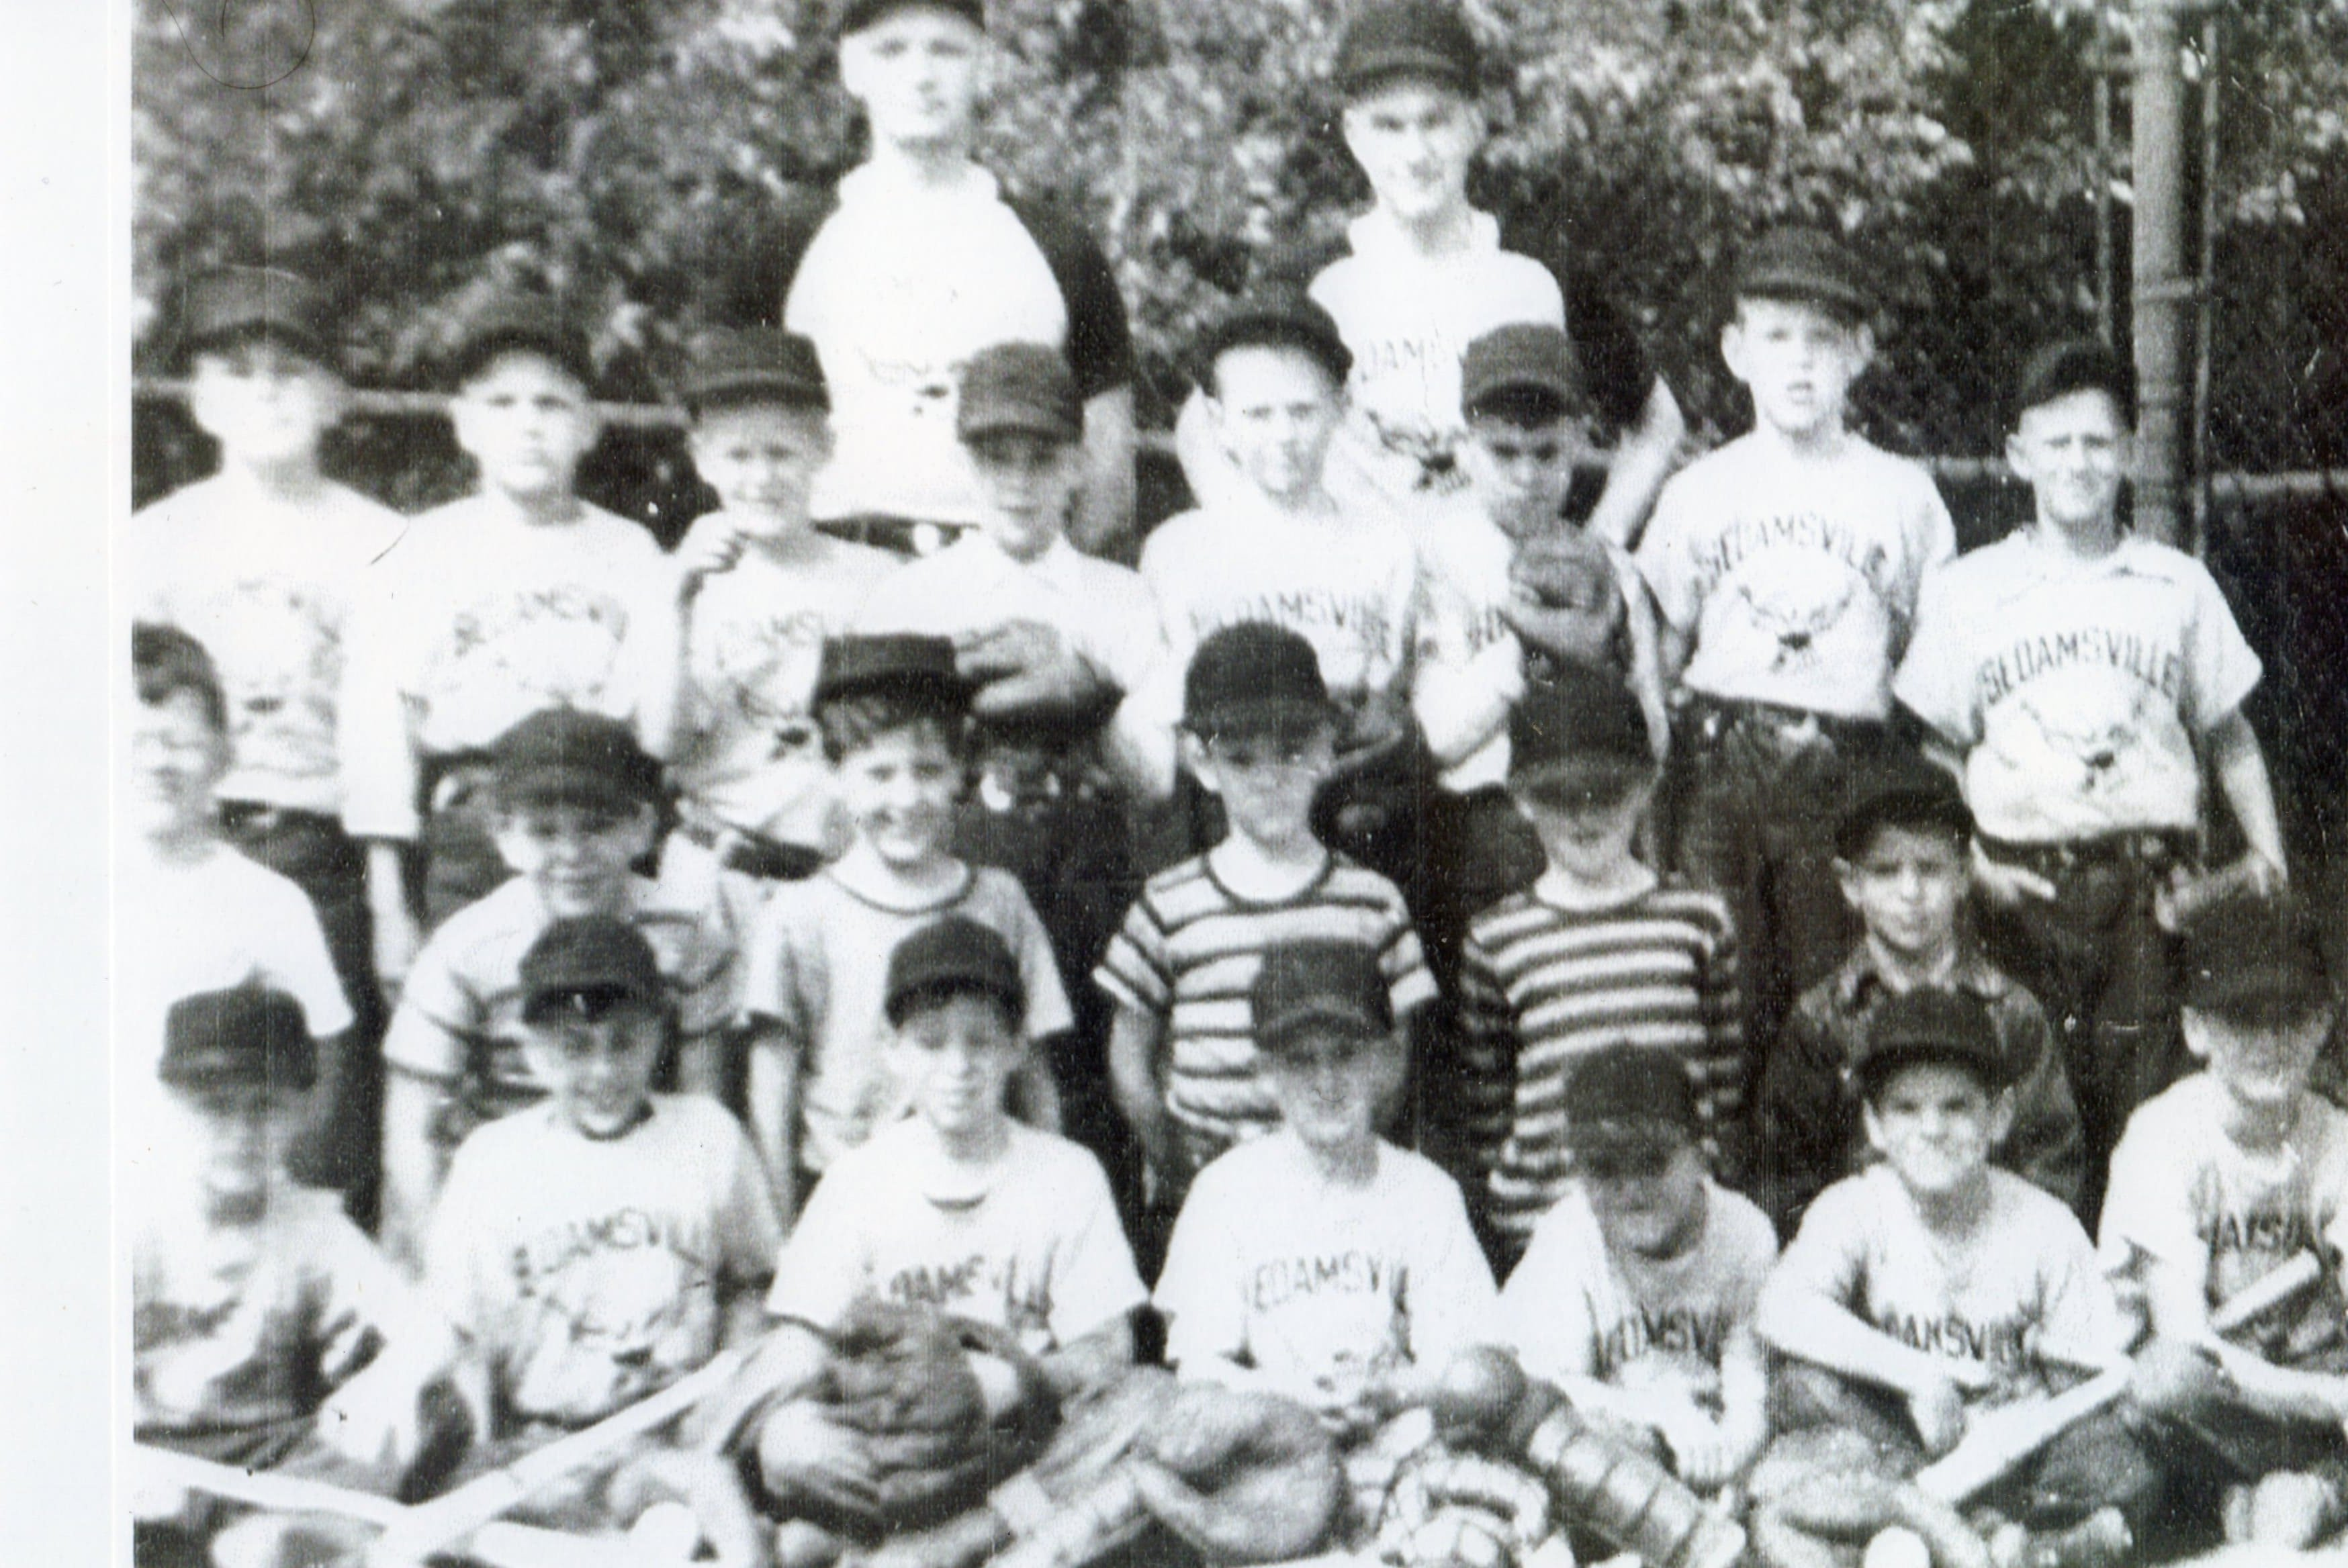 Local Cincinnati Baseball Legend Pete Rose learned to play ball at Bold Face Park. Rose is pictured second to the right on the bottom row. Photo Courtesy of the Donald and Pamela Balzer Private Collection.